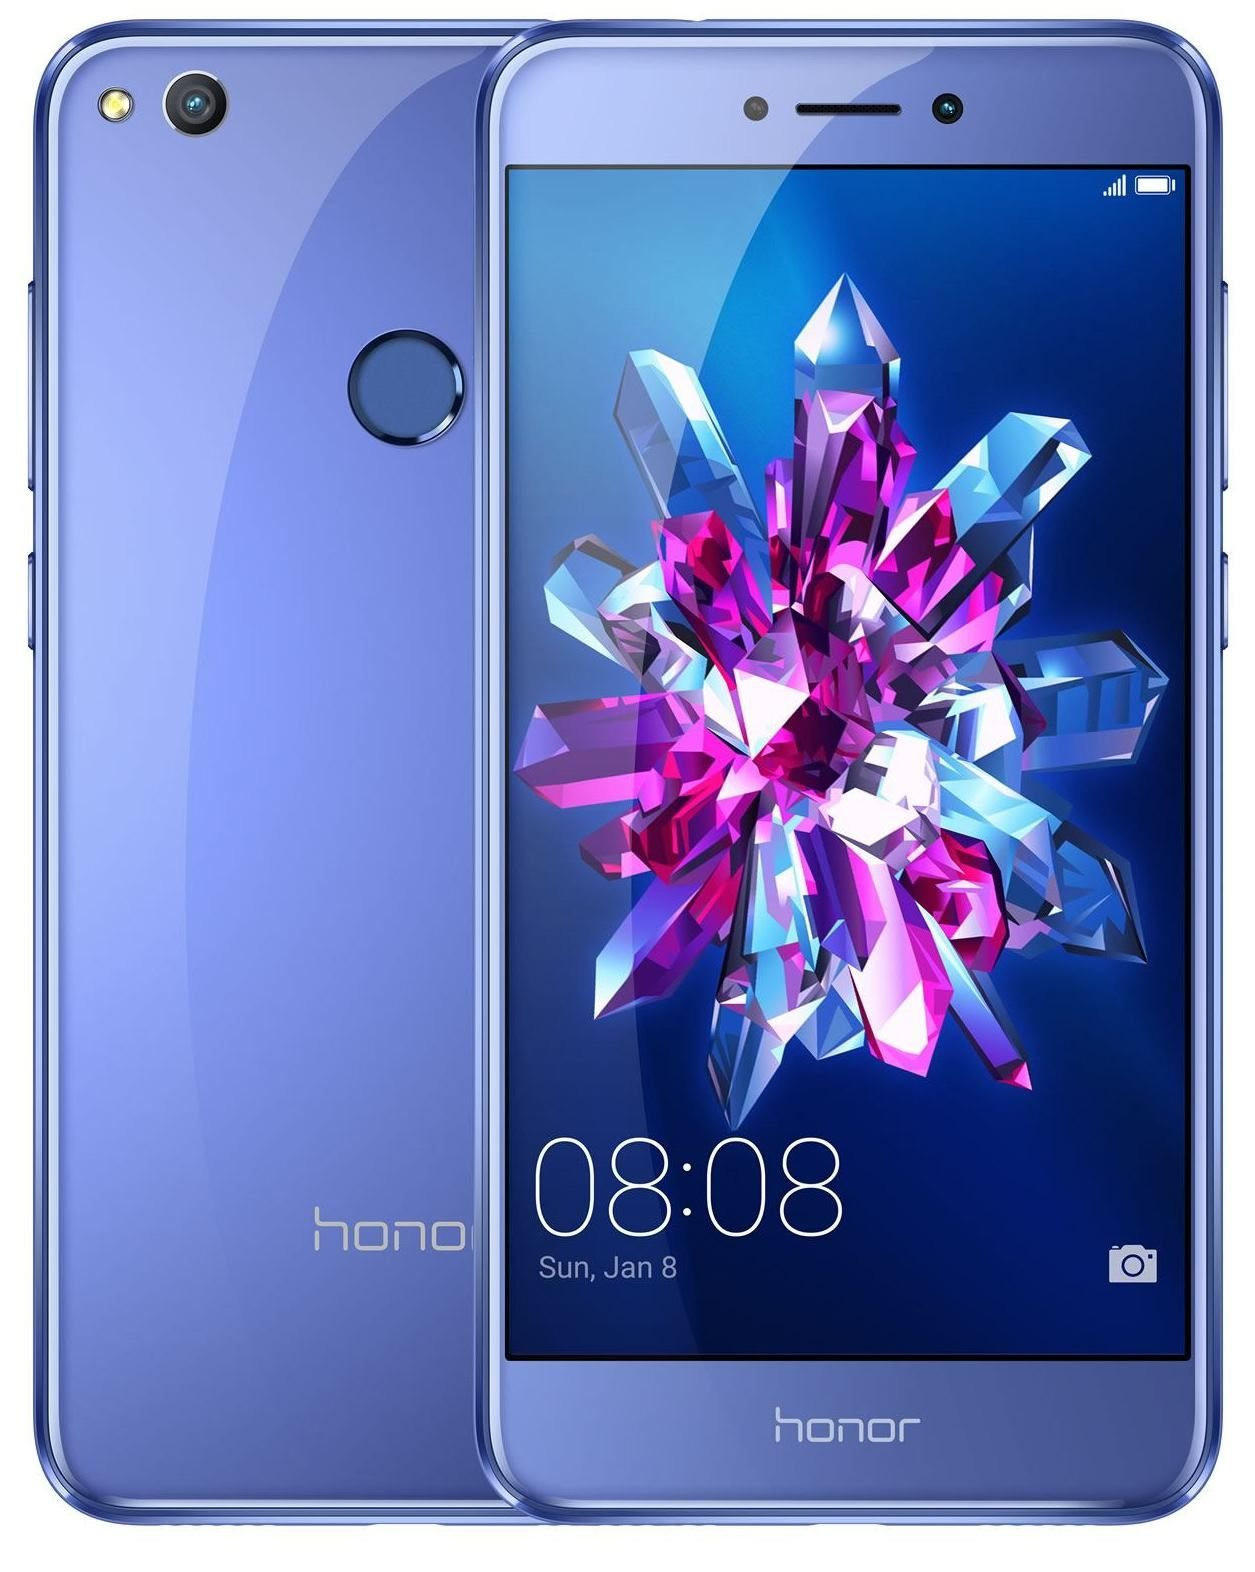 HOW TO: Huawei Honor 8 Unlock Bootloader [Tutorial / Guide]